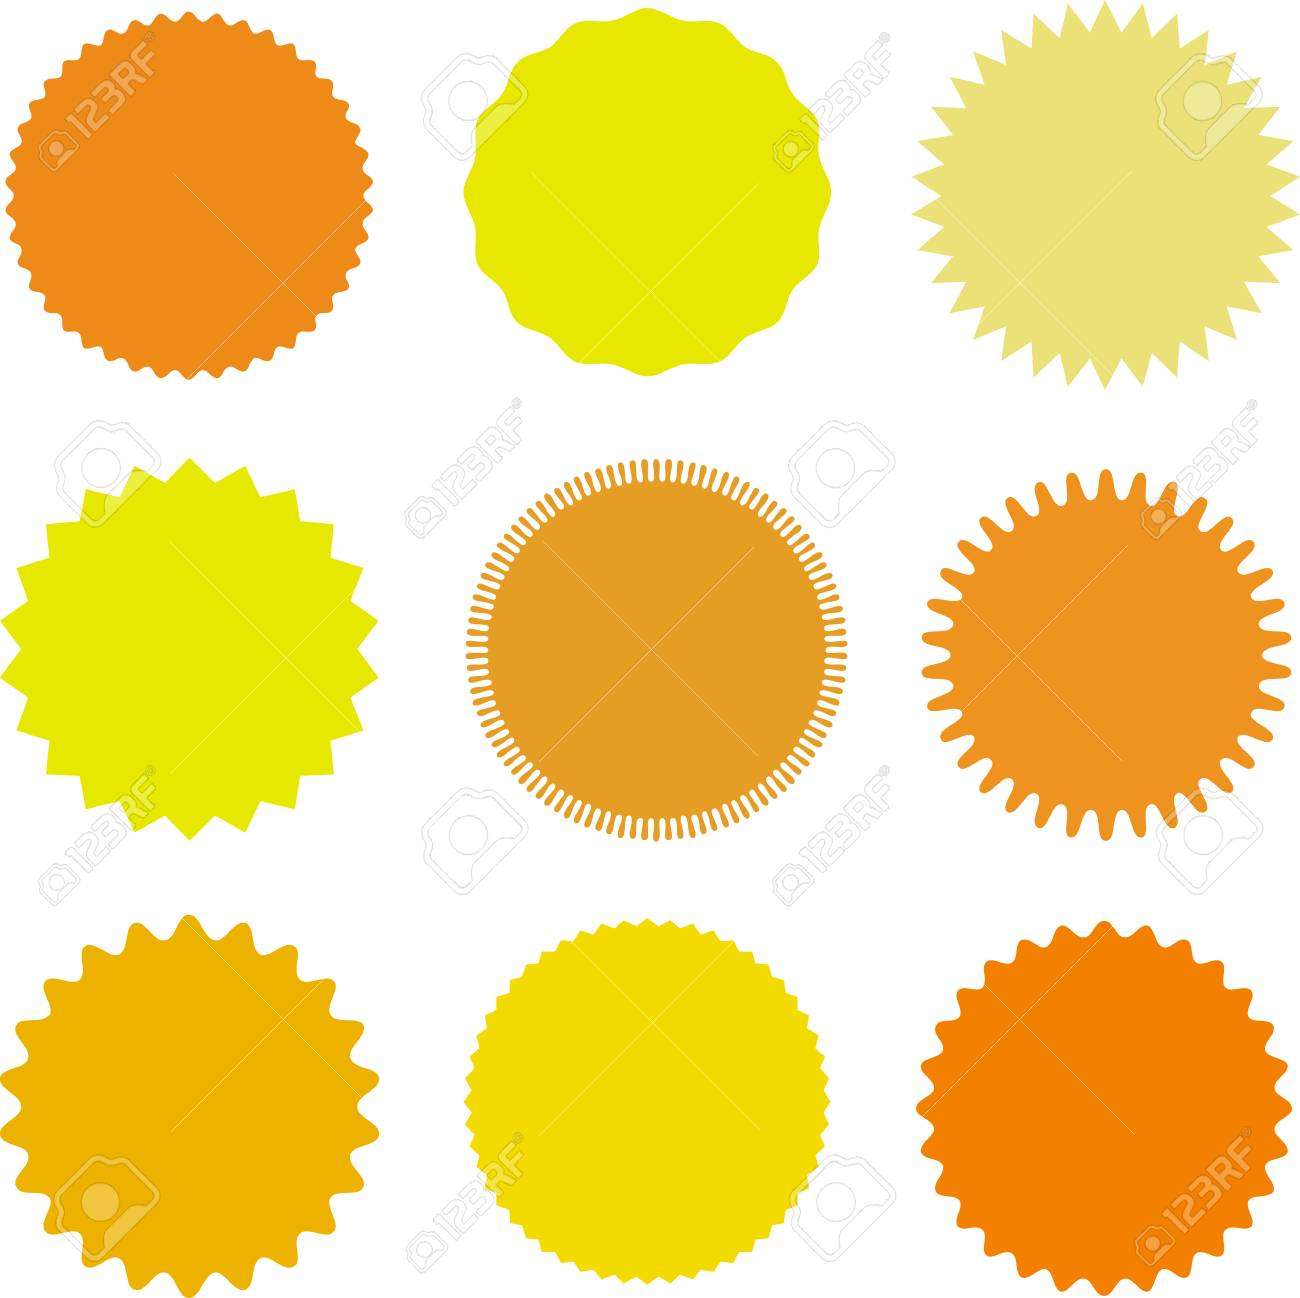 Set Of Vector Starburst Sunburst Badges Different Shades Of Royalty Free Cliparts Vectors And Stock Illustration Image 85422371